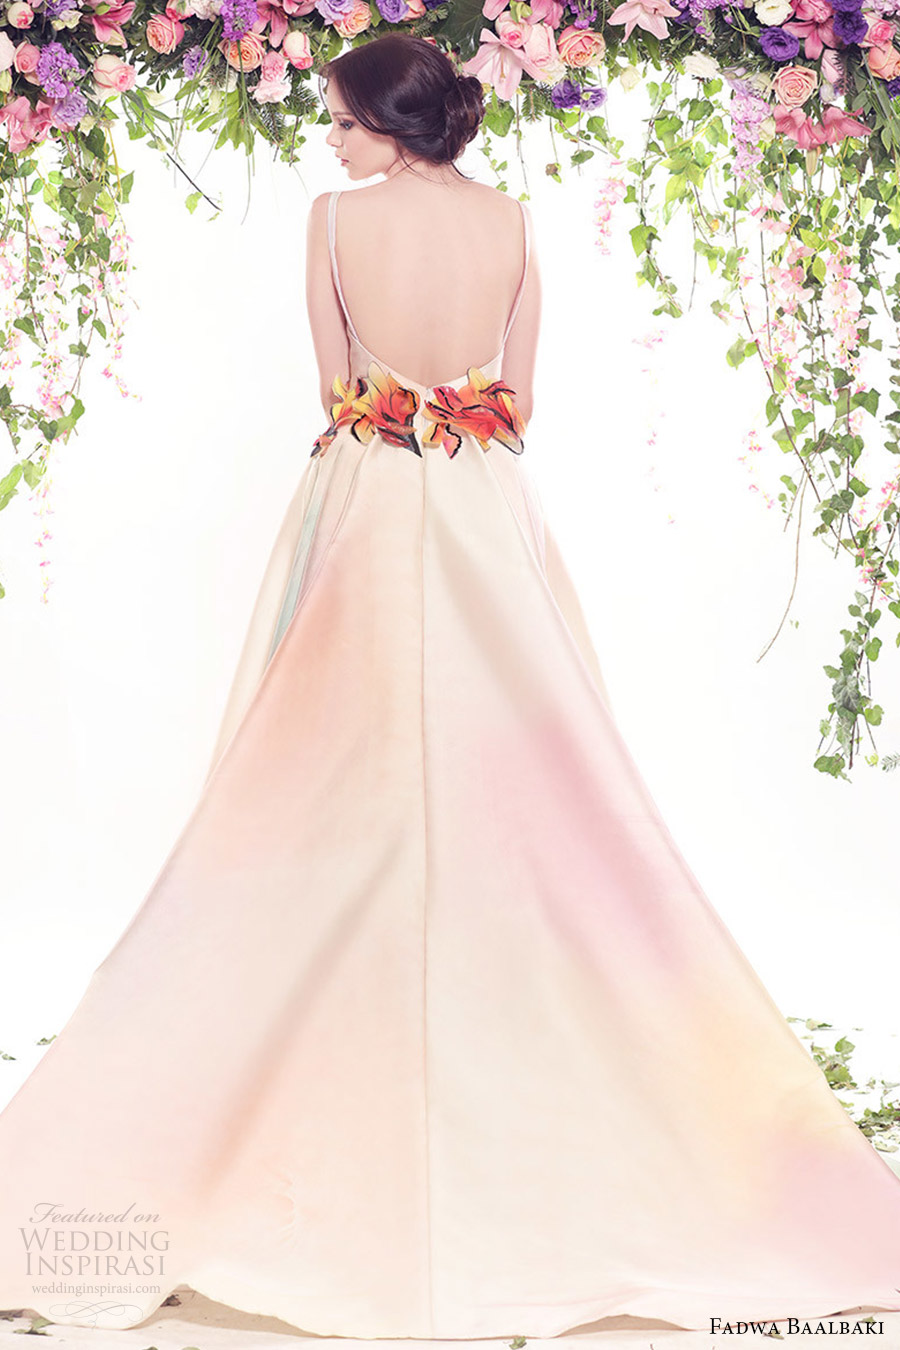 fadwa baalbaki spring 2016 couture sleeveless bateau neck ball gown multi color floral bv low back train